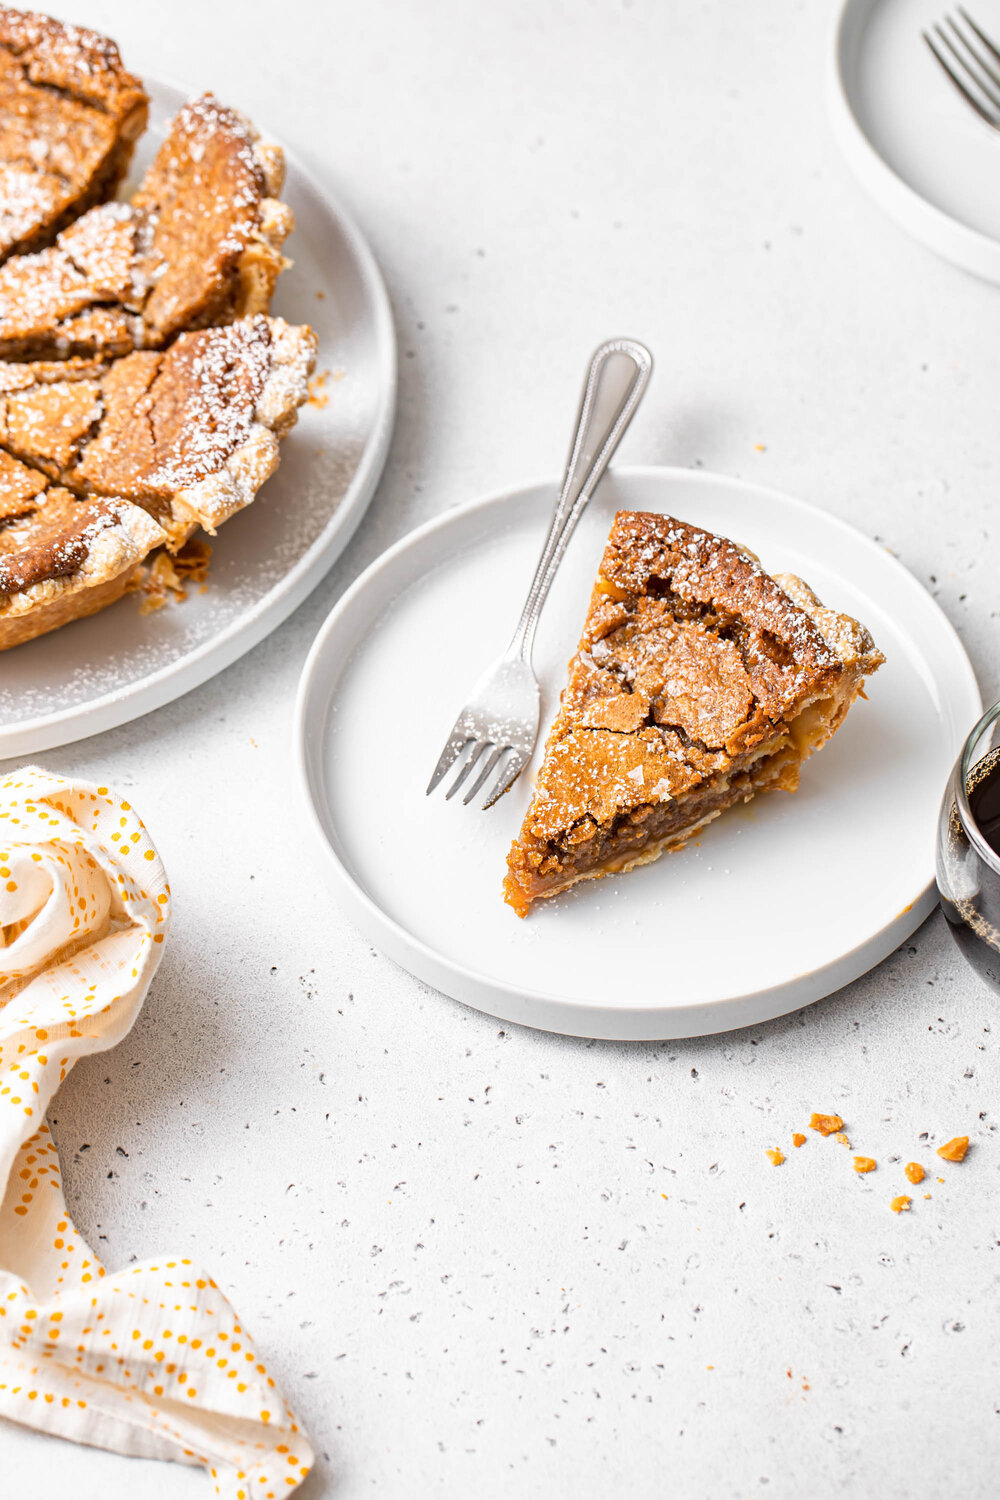 A slice of French Canadian Maple Sugar Pie with a gooey, brown sugar filling and crispy top.